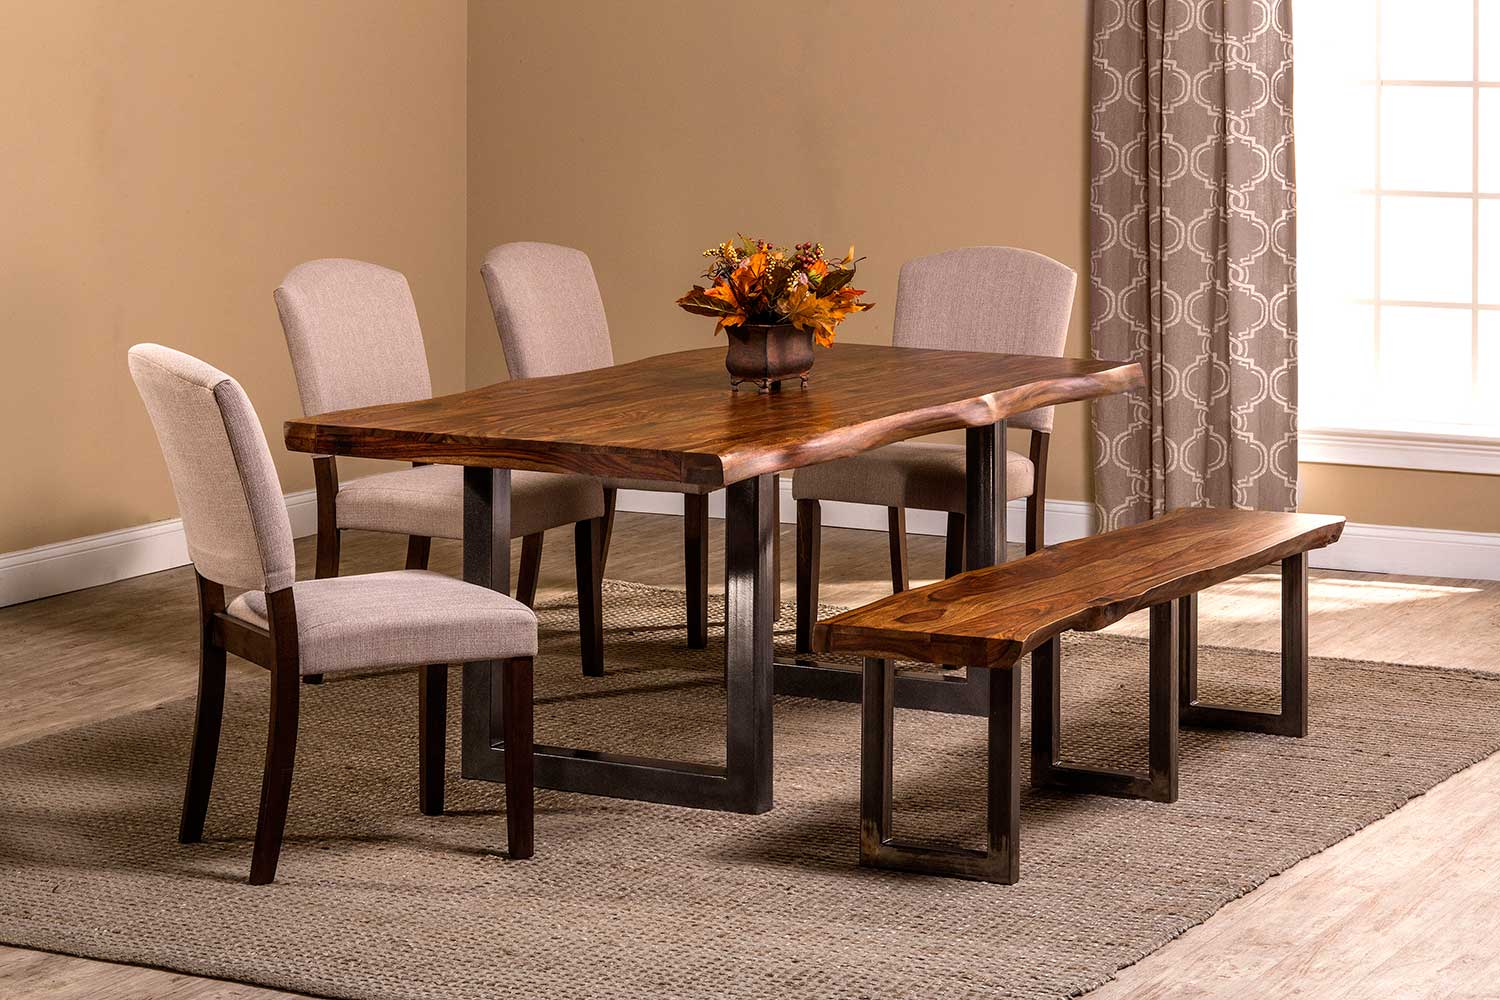 Hillsdale Emerson 6-Piece Rectangle Dining Set - Natural Sheesham/Gray Powder Coat